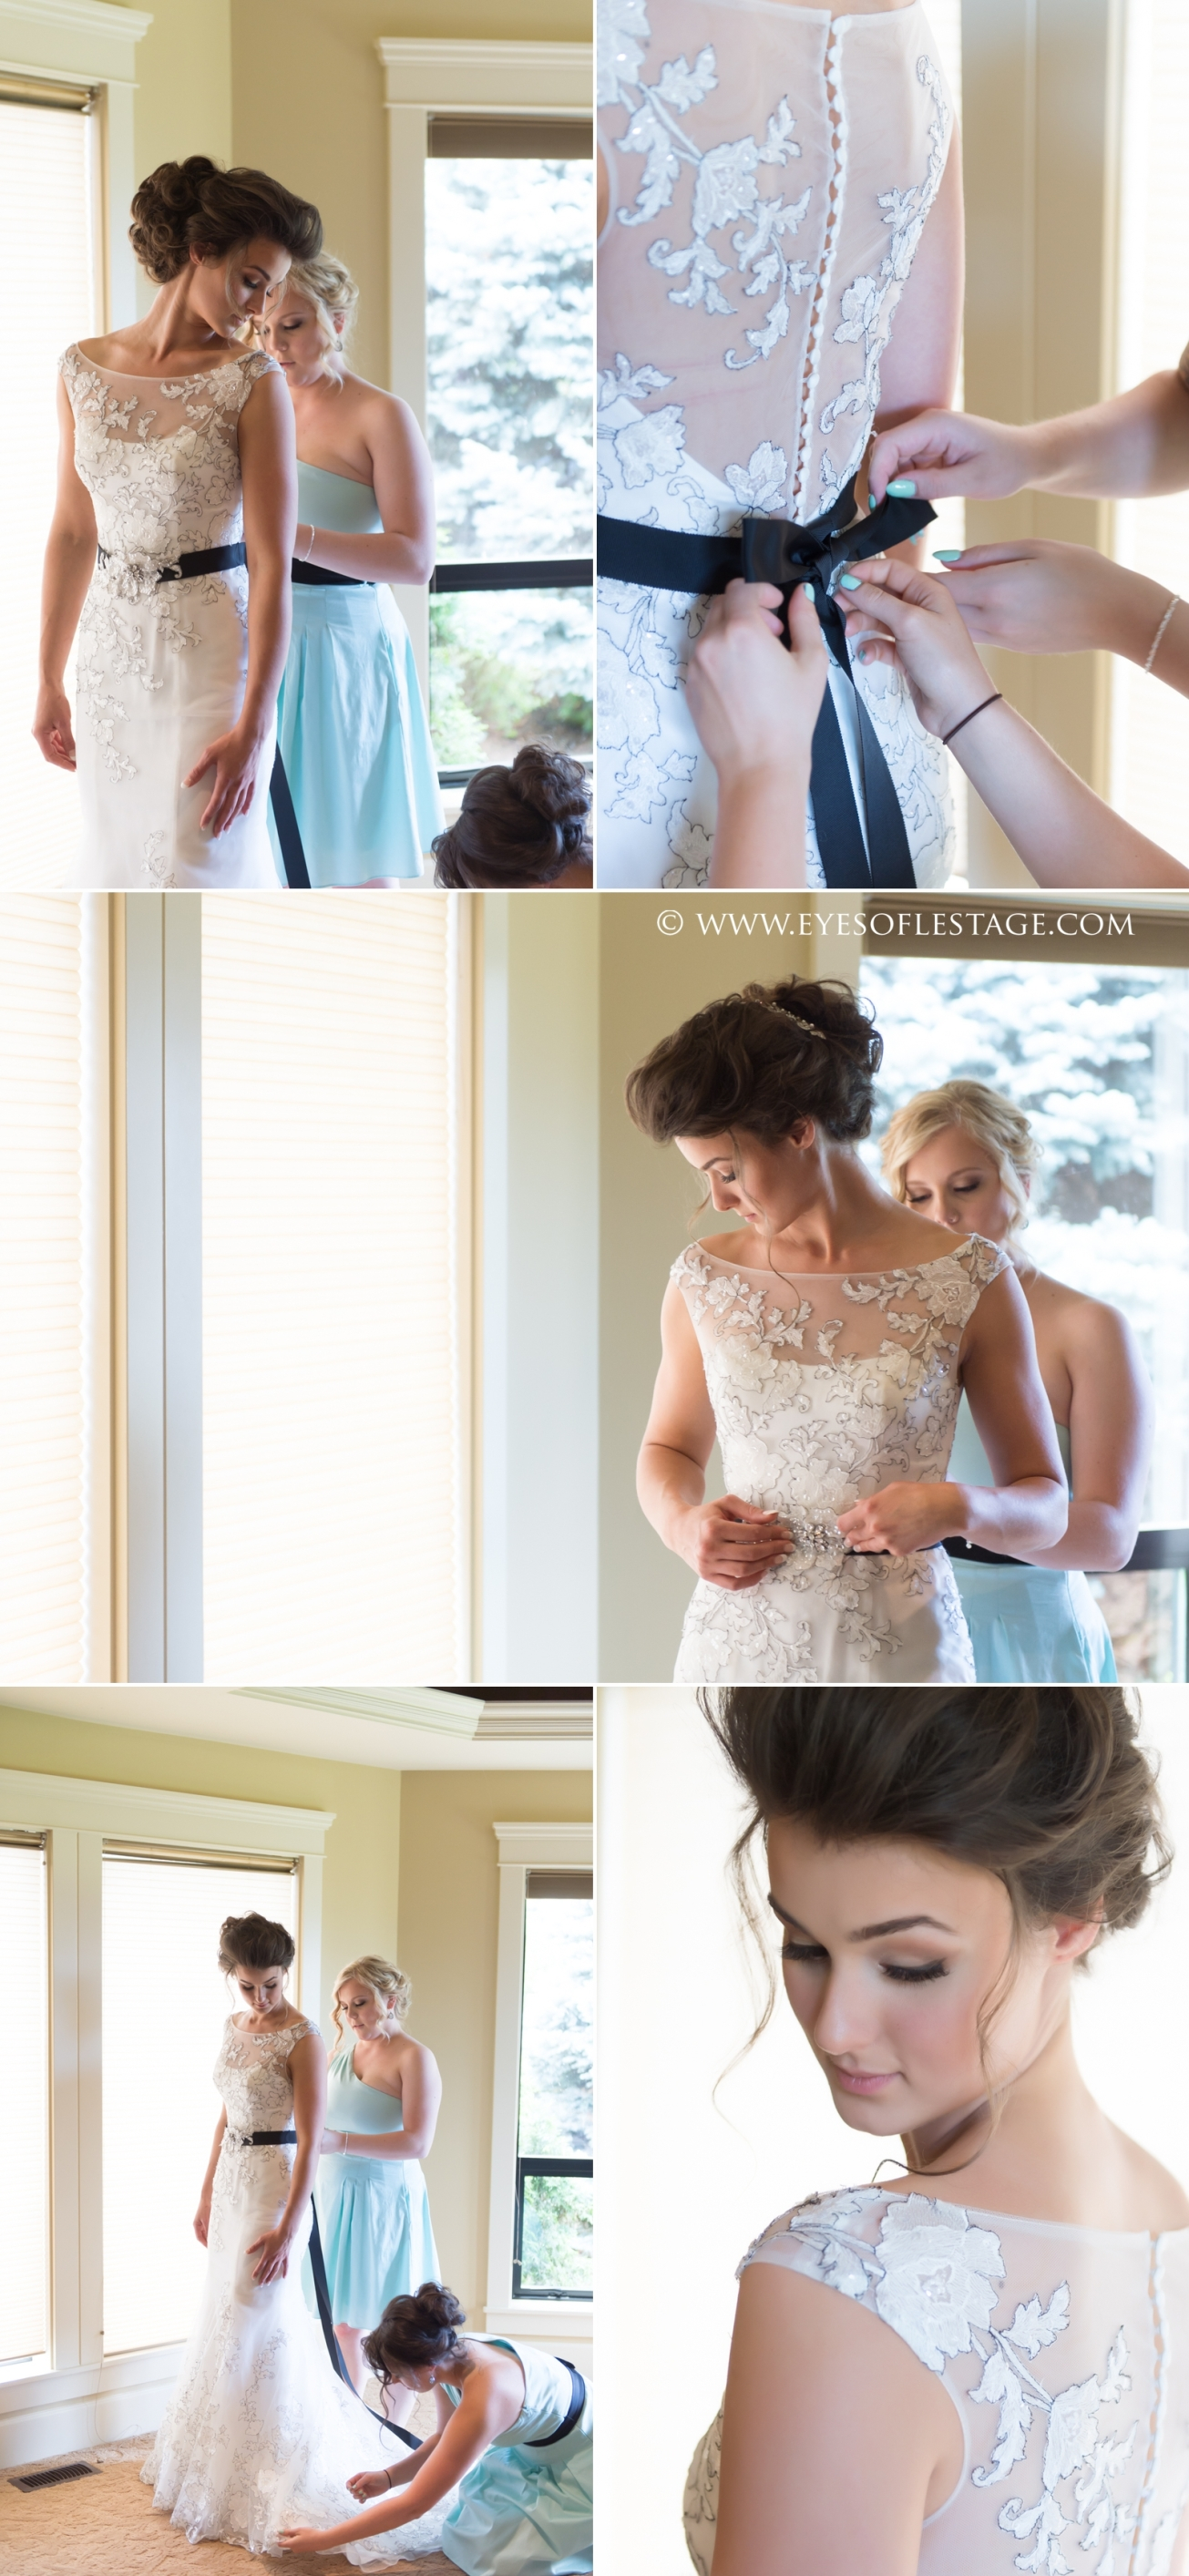 Kelowna Vernon Wedding Photography - Suzanne Le Stage - Durali Villa 3